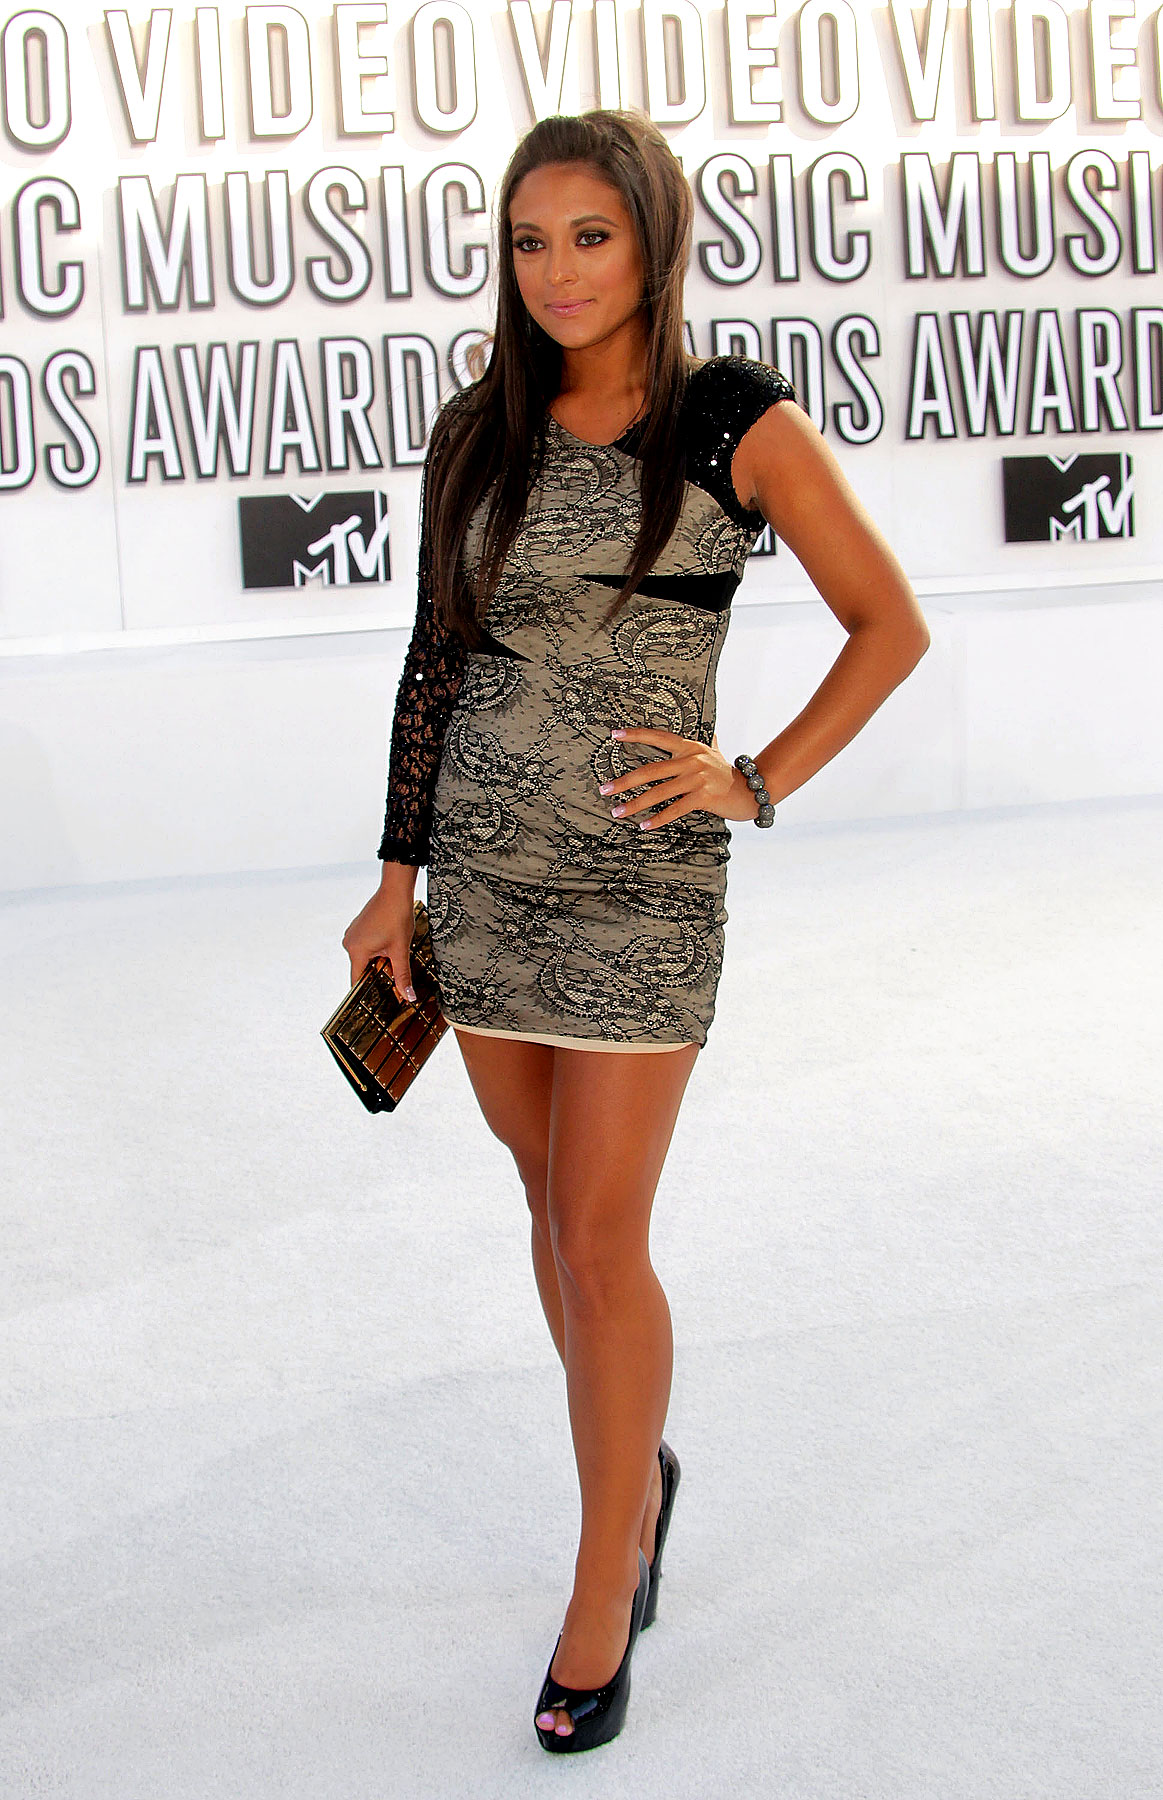 Sammi Sweetheart at the 2010 MTV Video Music Awards (PHOTOS)